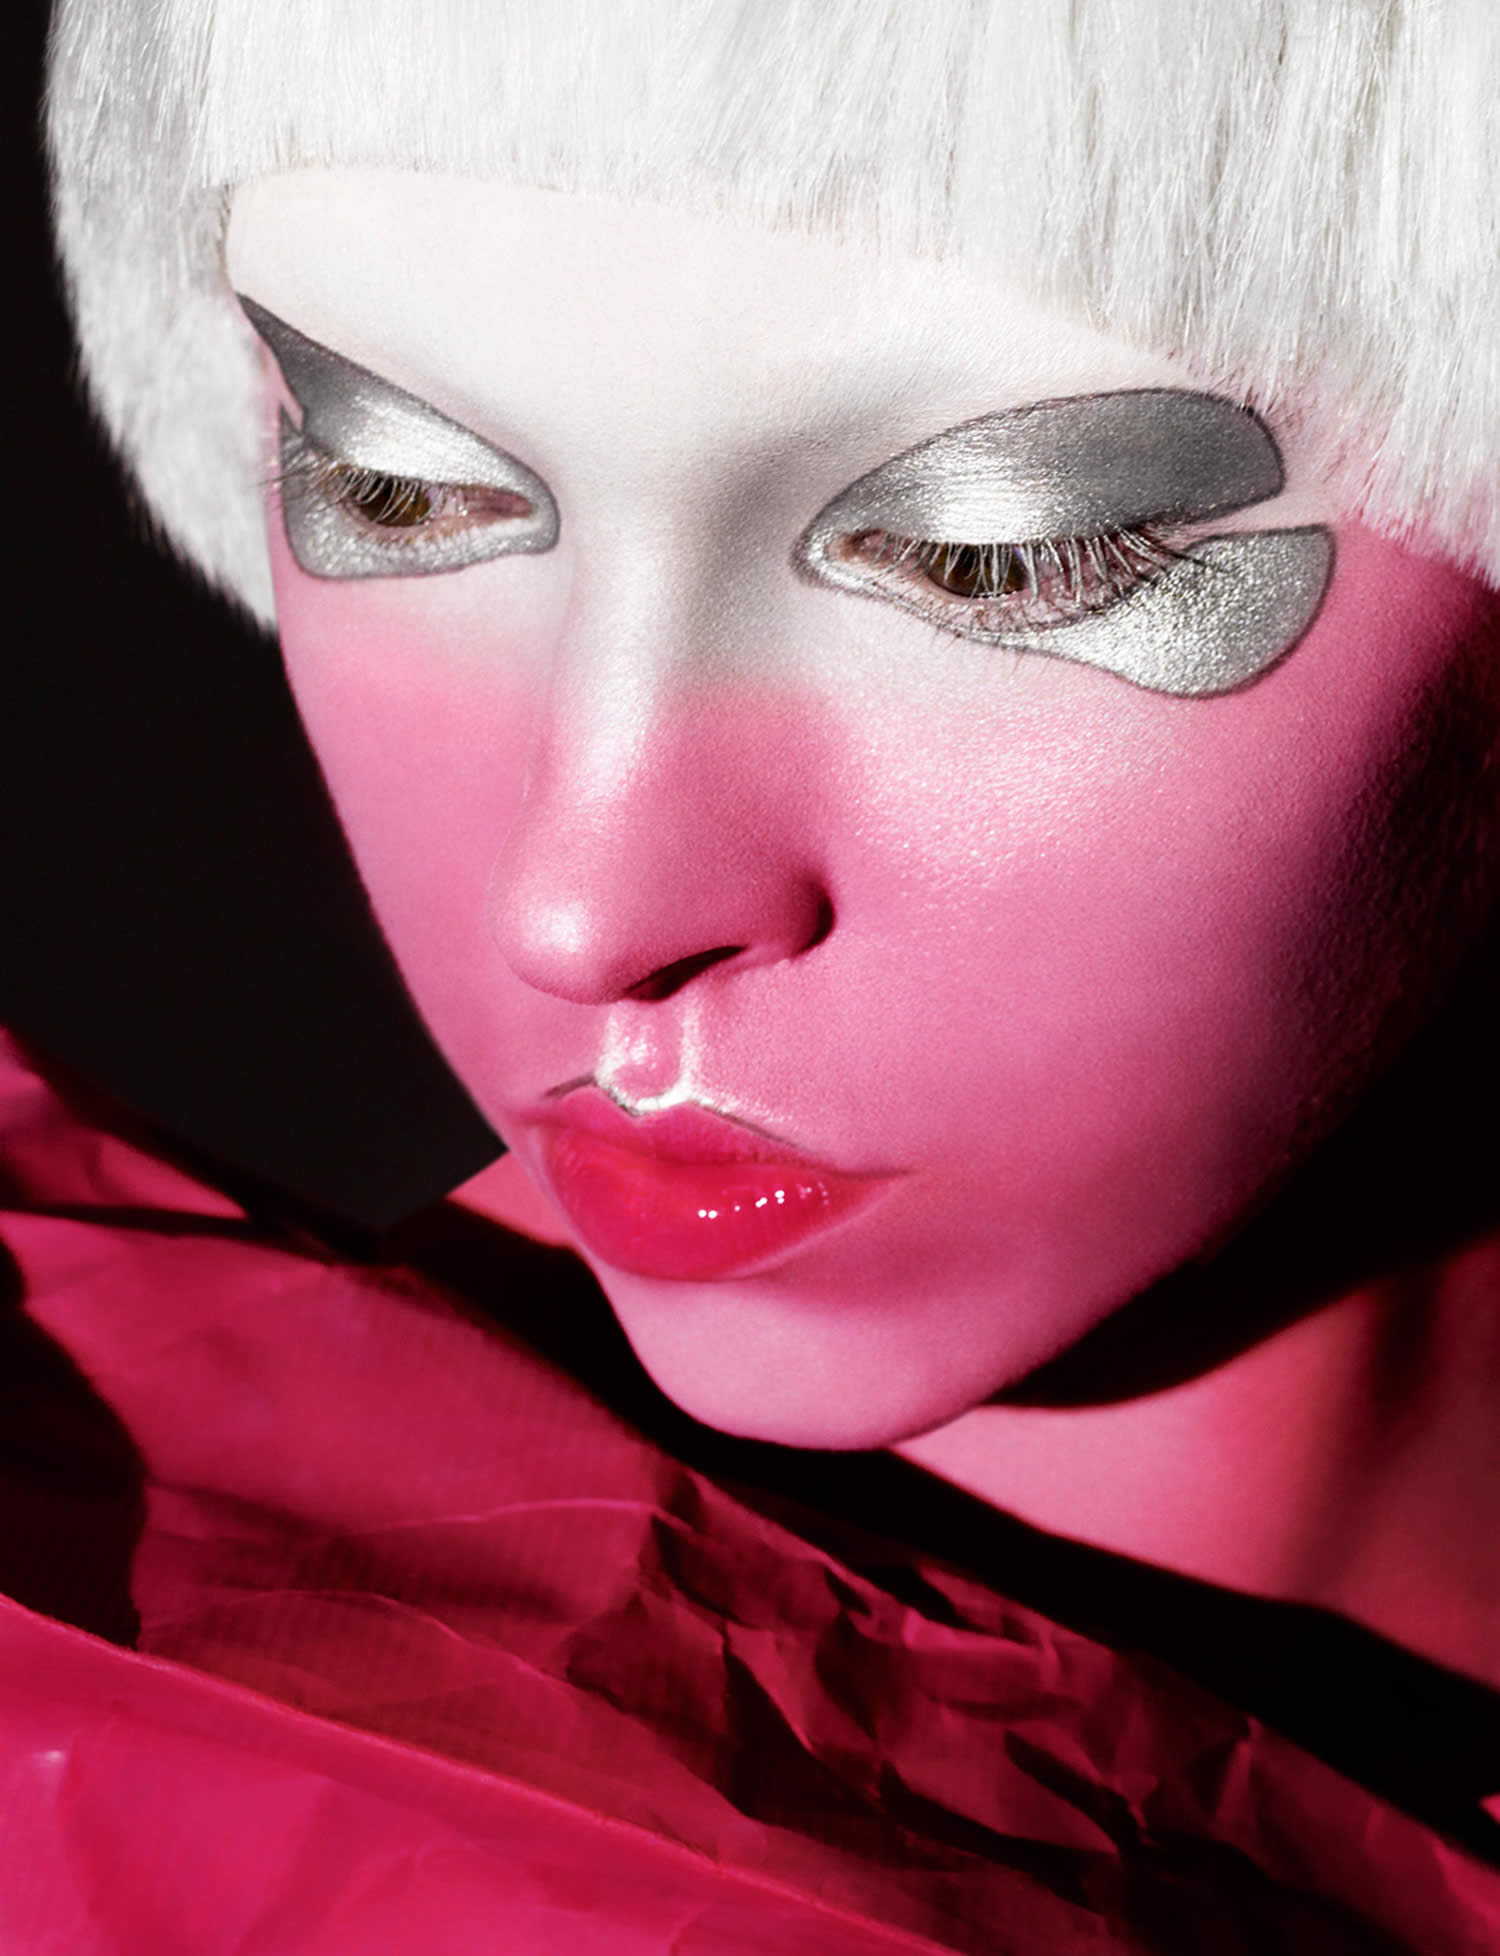 woman's face painted in pink, photo by rankin